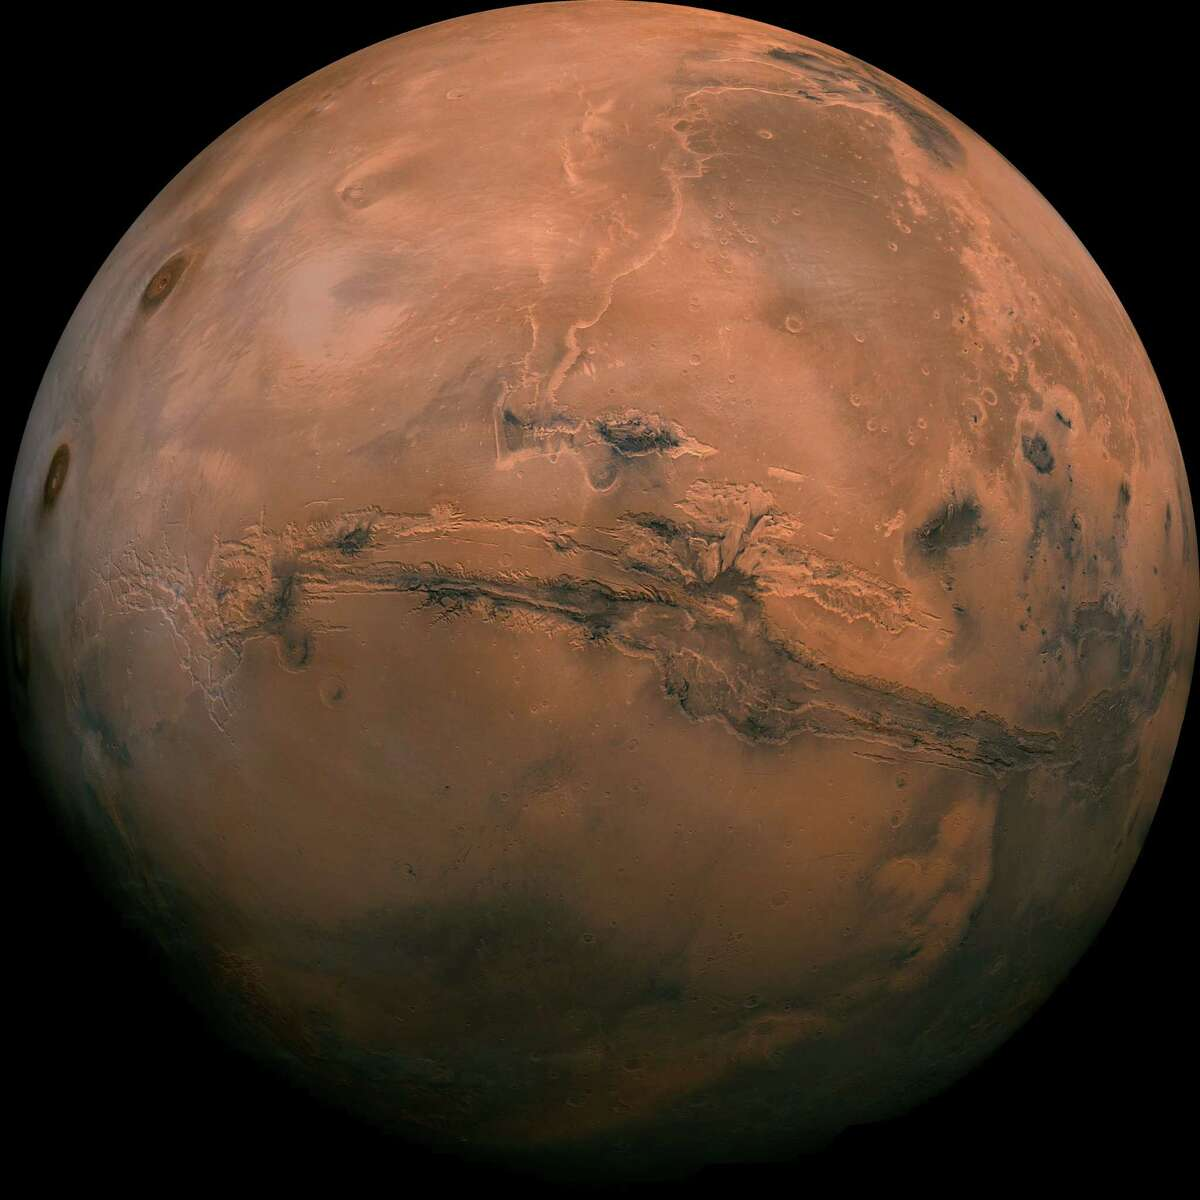 Mosaic of the Valles Marineris hemisphere of Mars projected into point perspective, a view similar to that which one would see from a spacecraft. See more amazing images from the red planet.